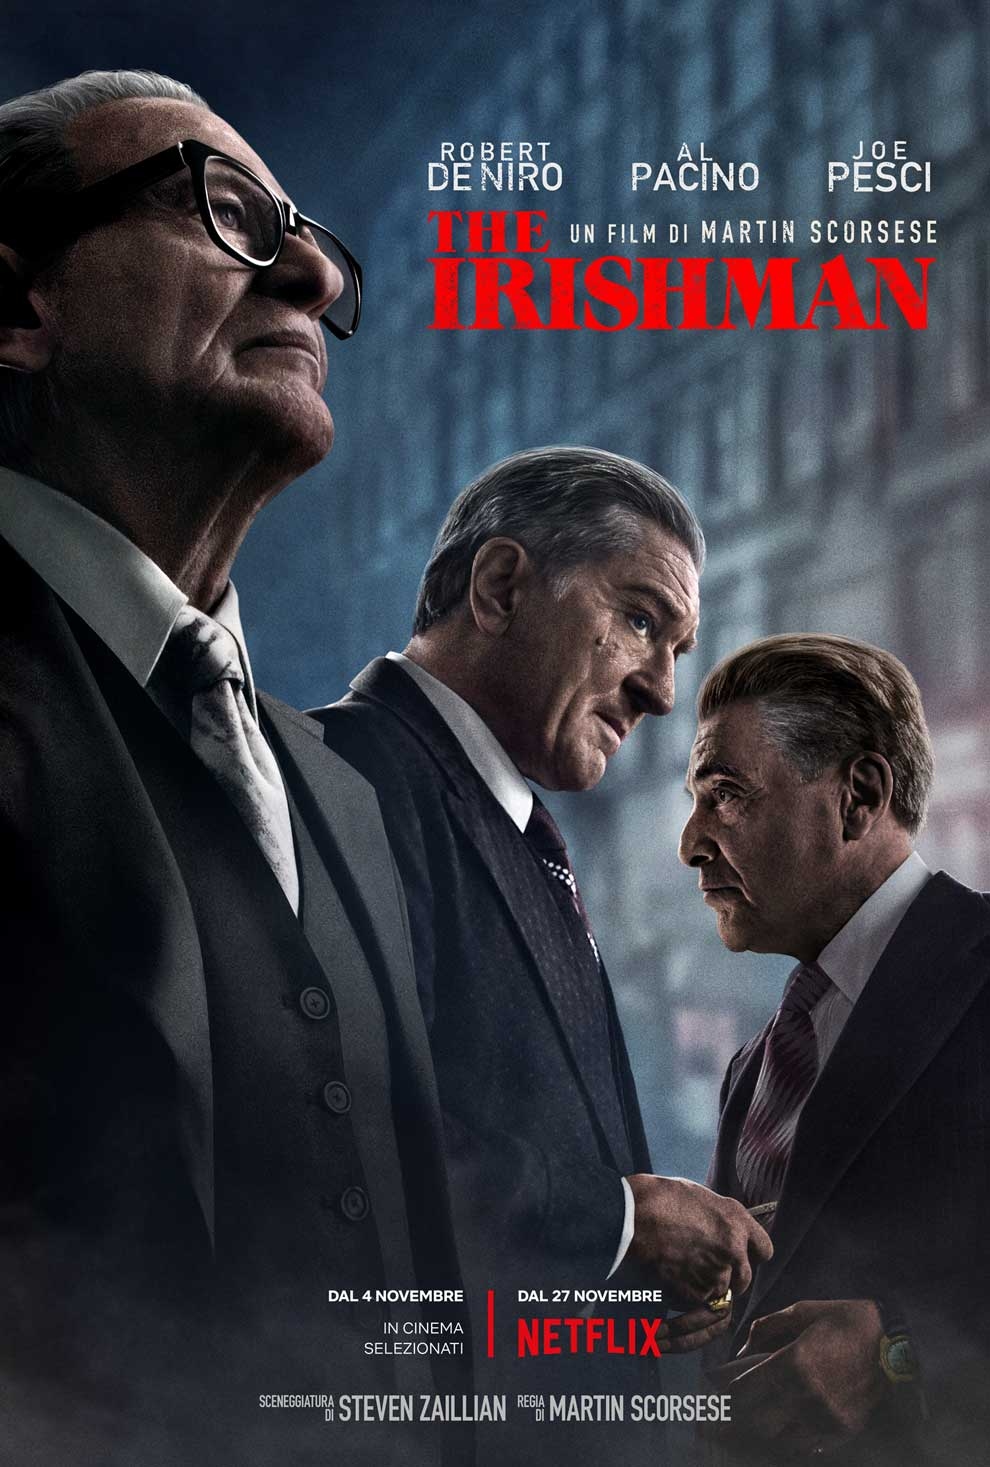 the-irishman-netflix.jpg